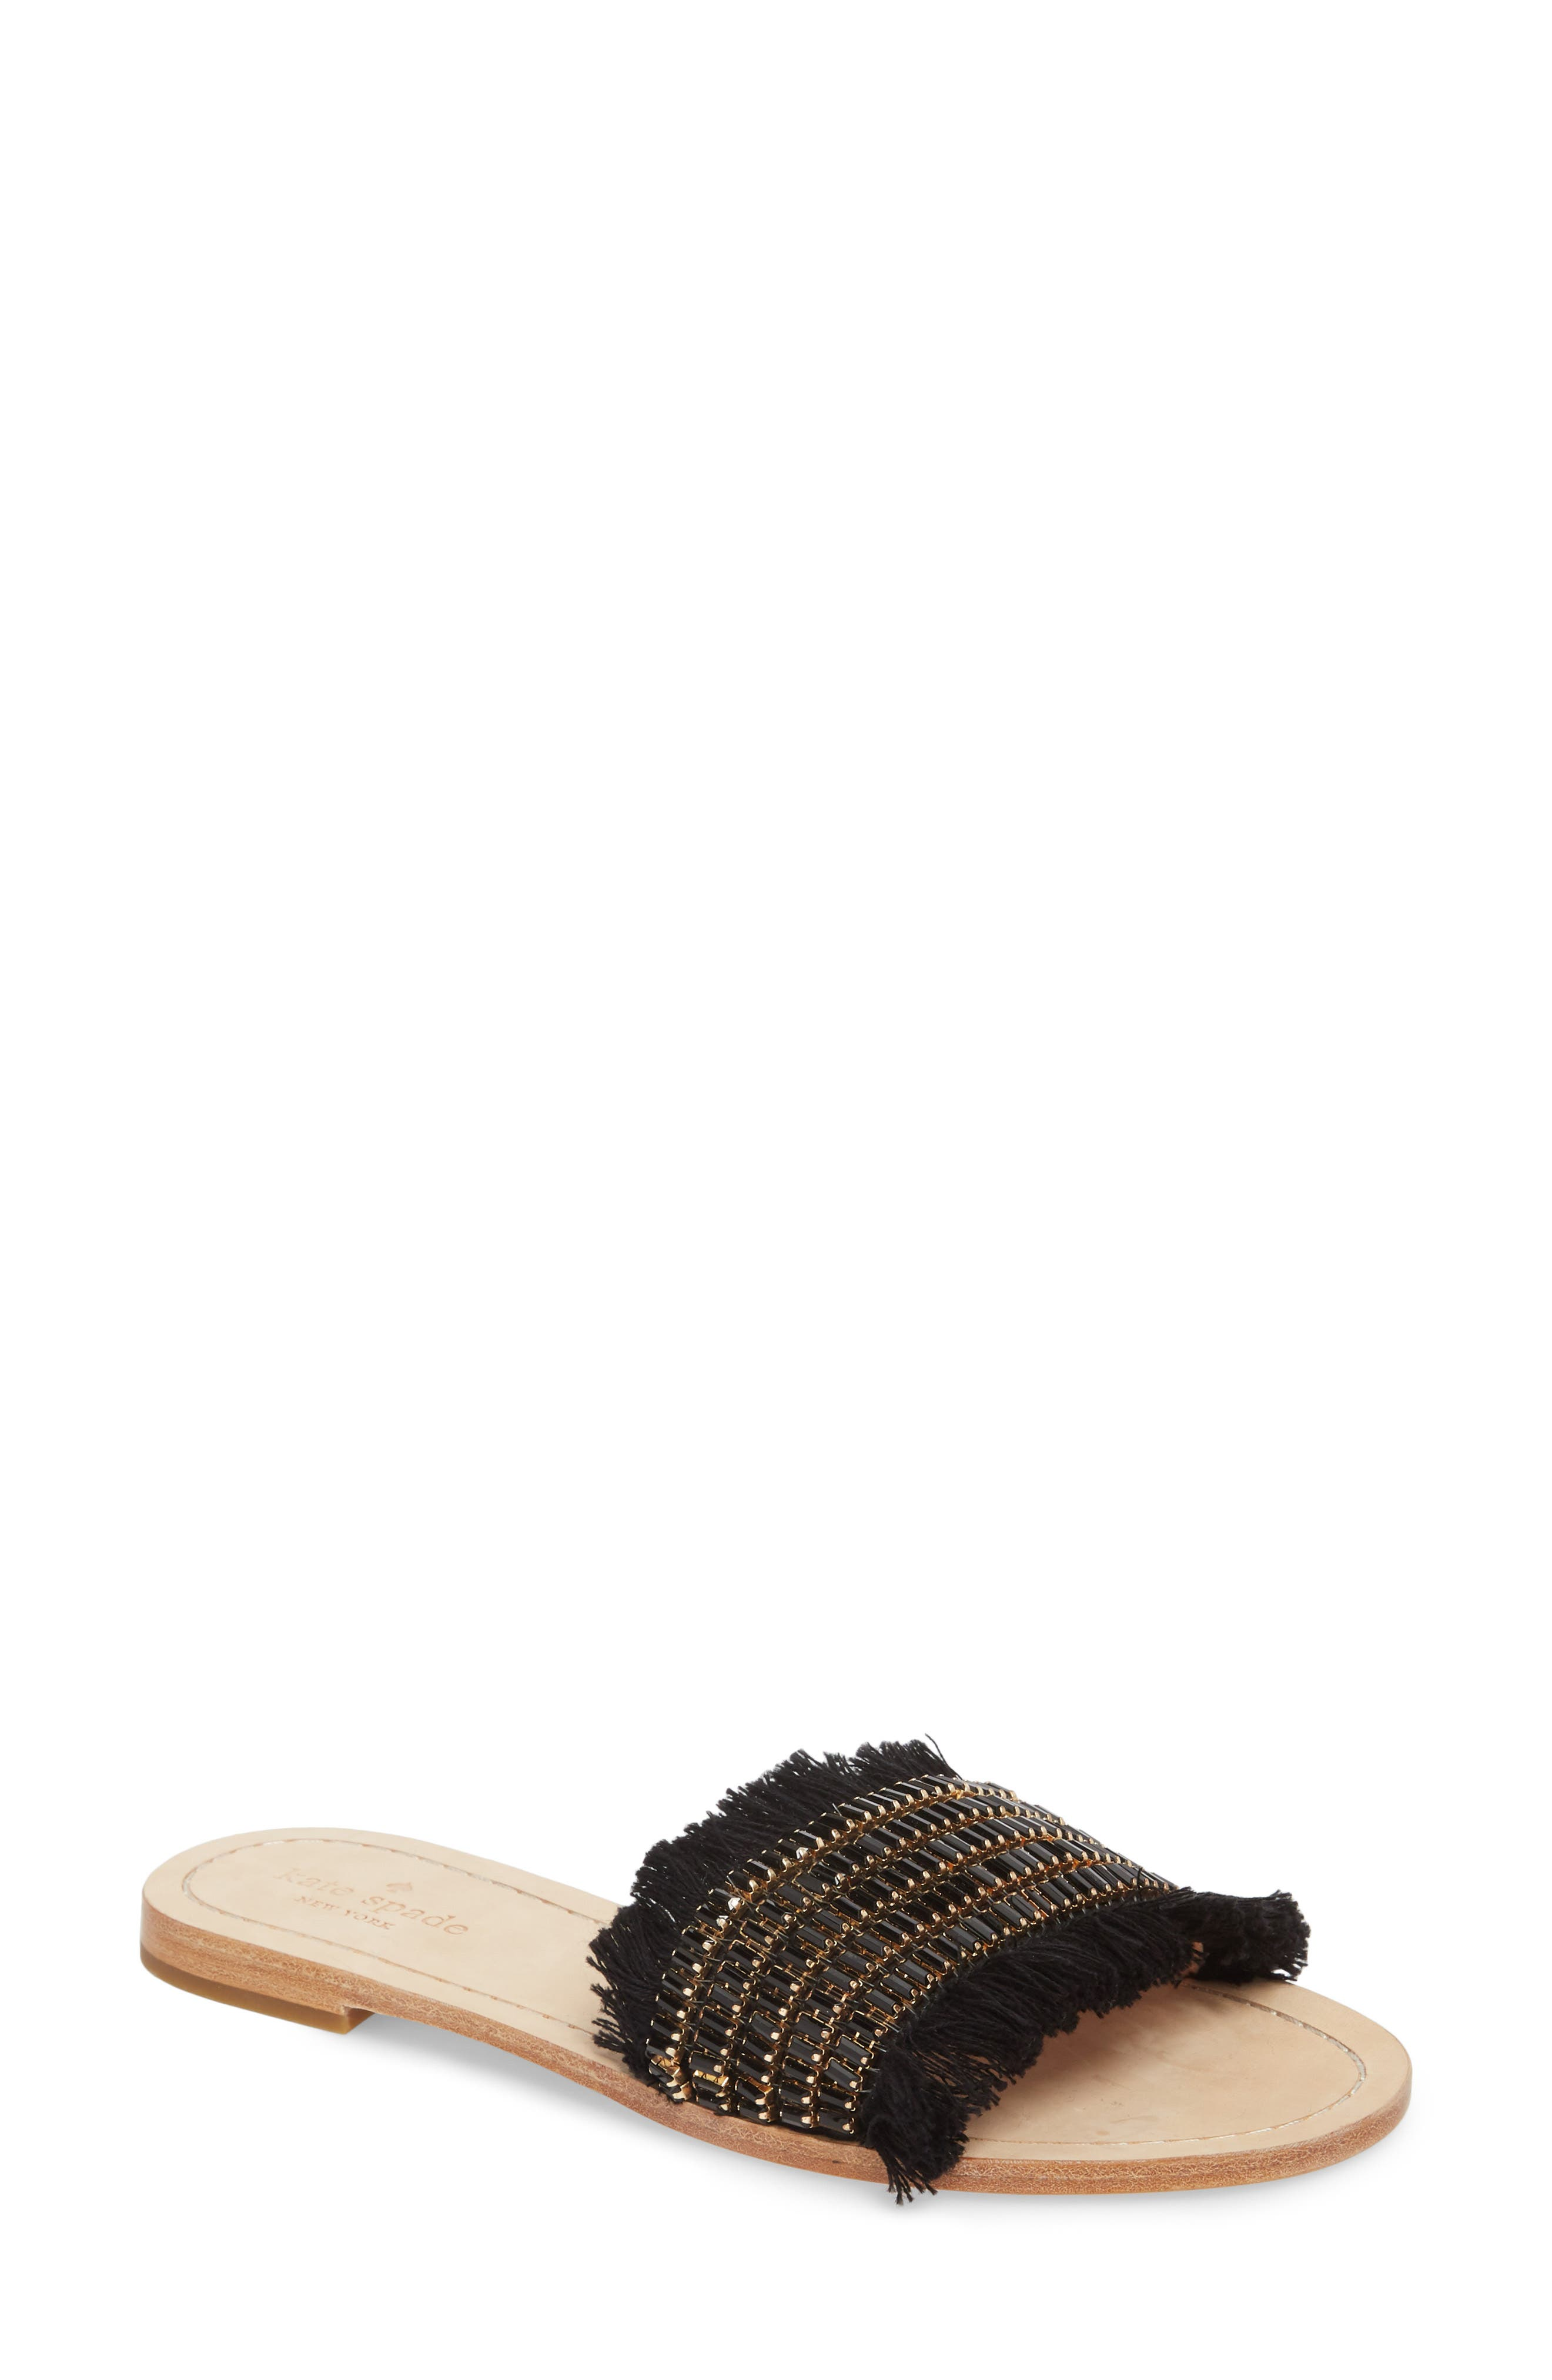 kate spade new york solaina slide sandal (Women)